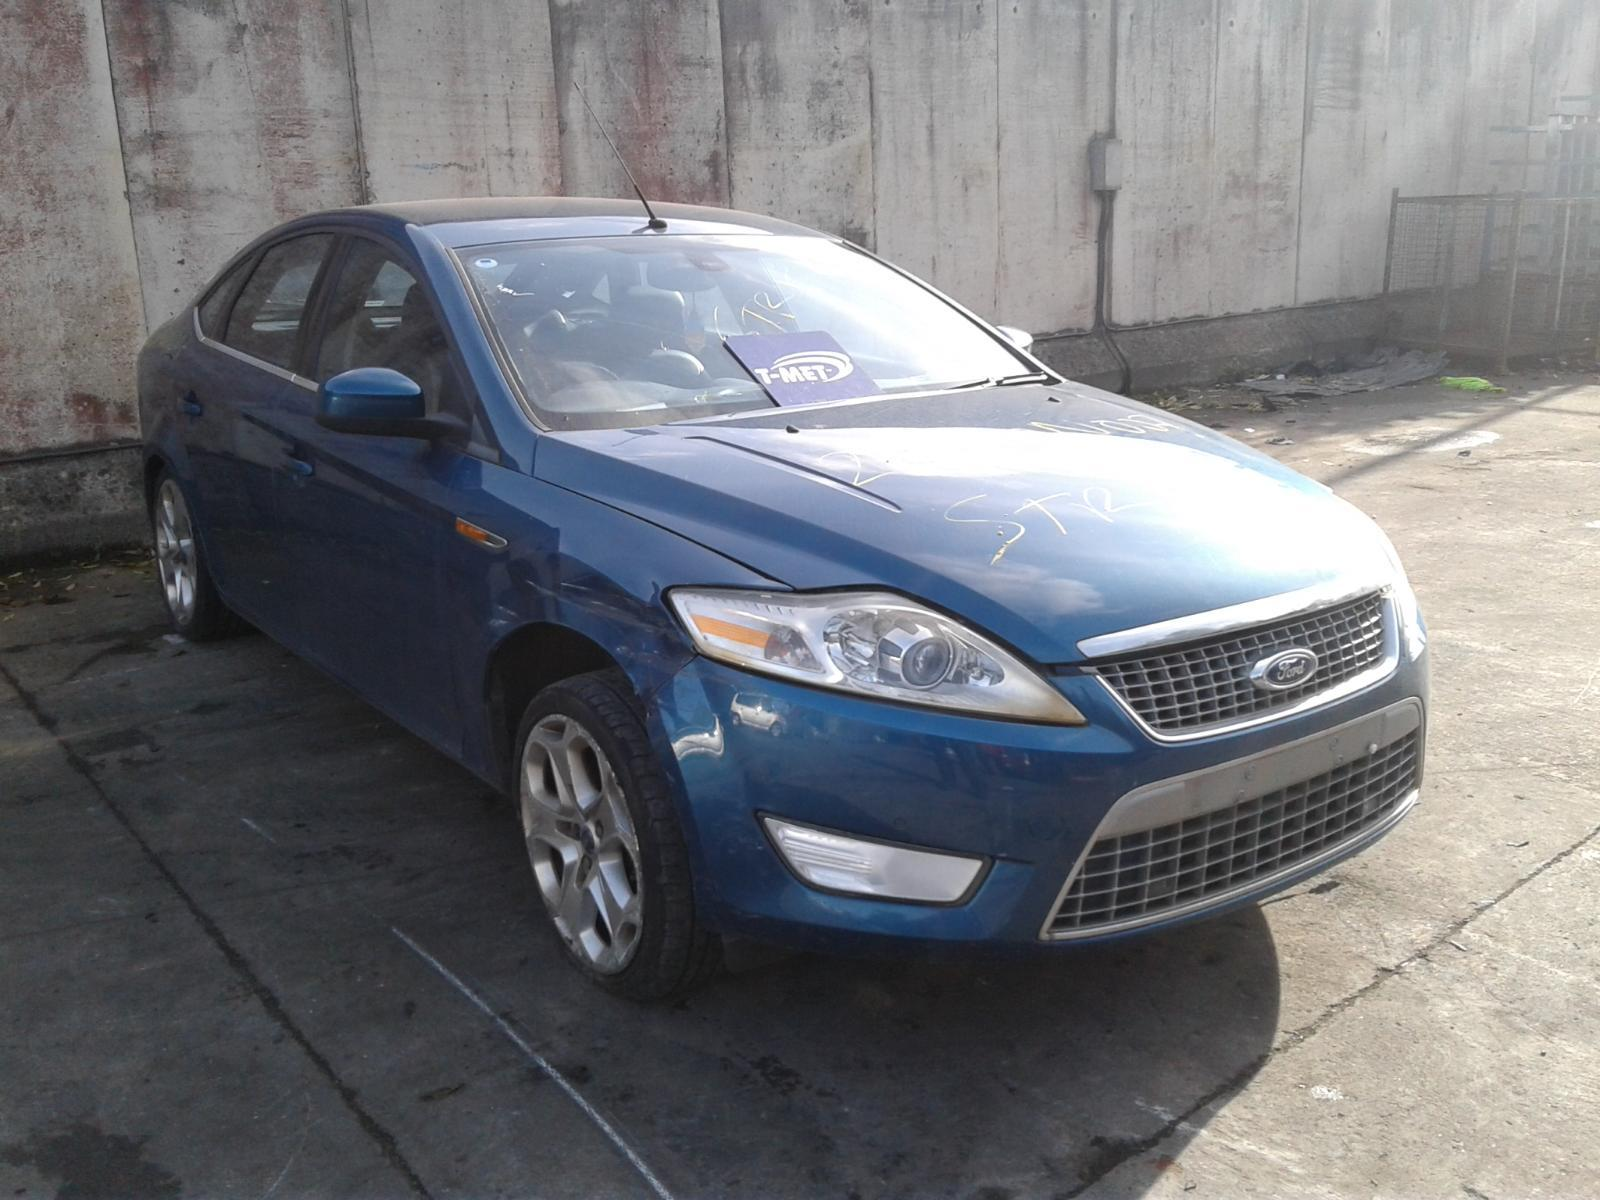 2008 FORD MONDEO Image